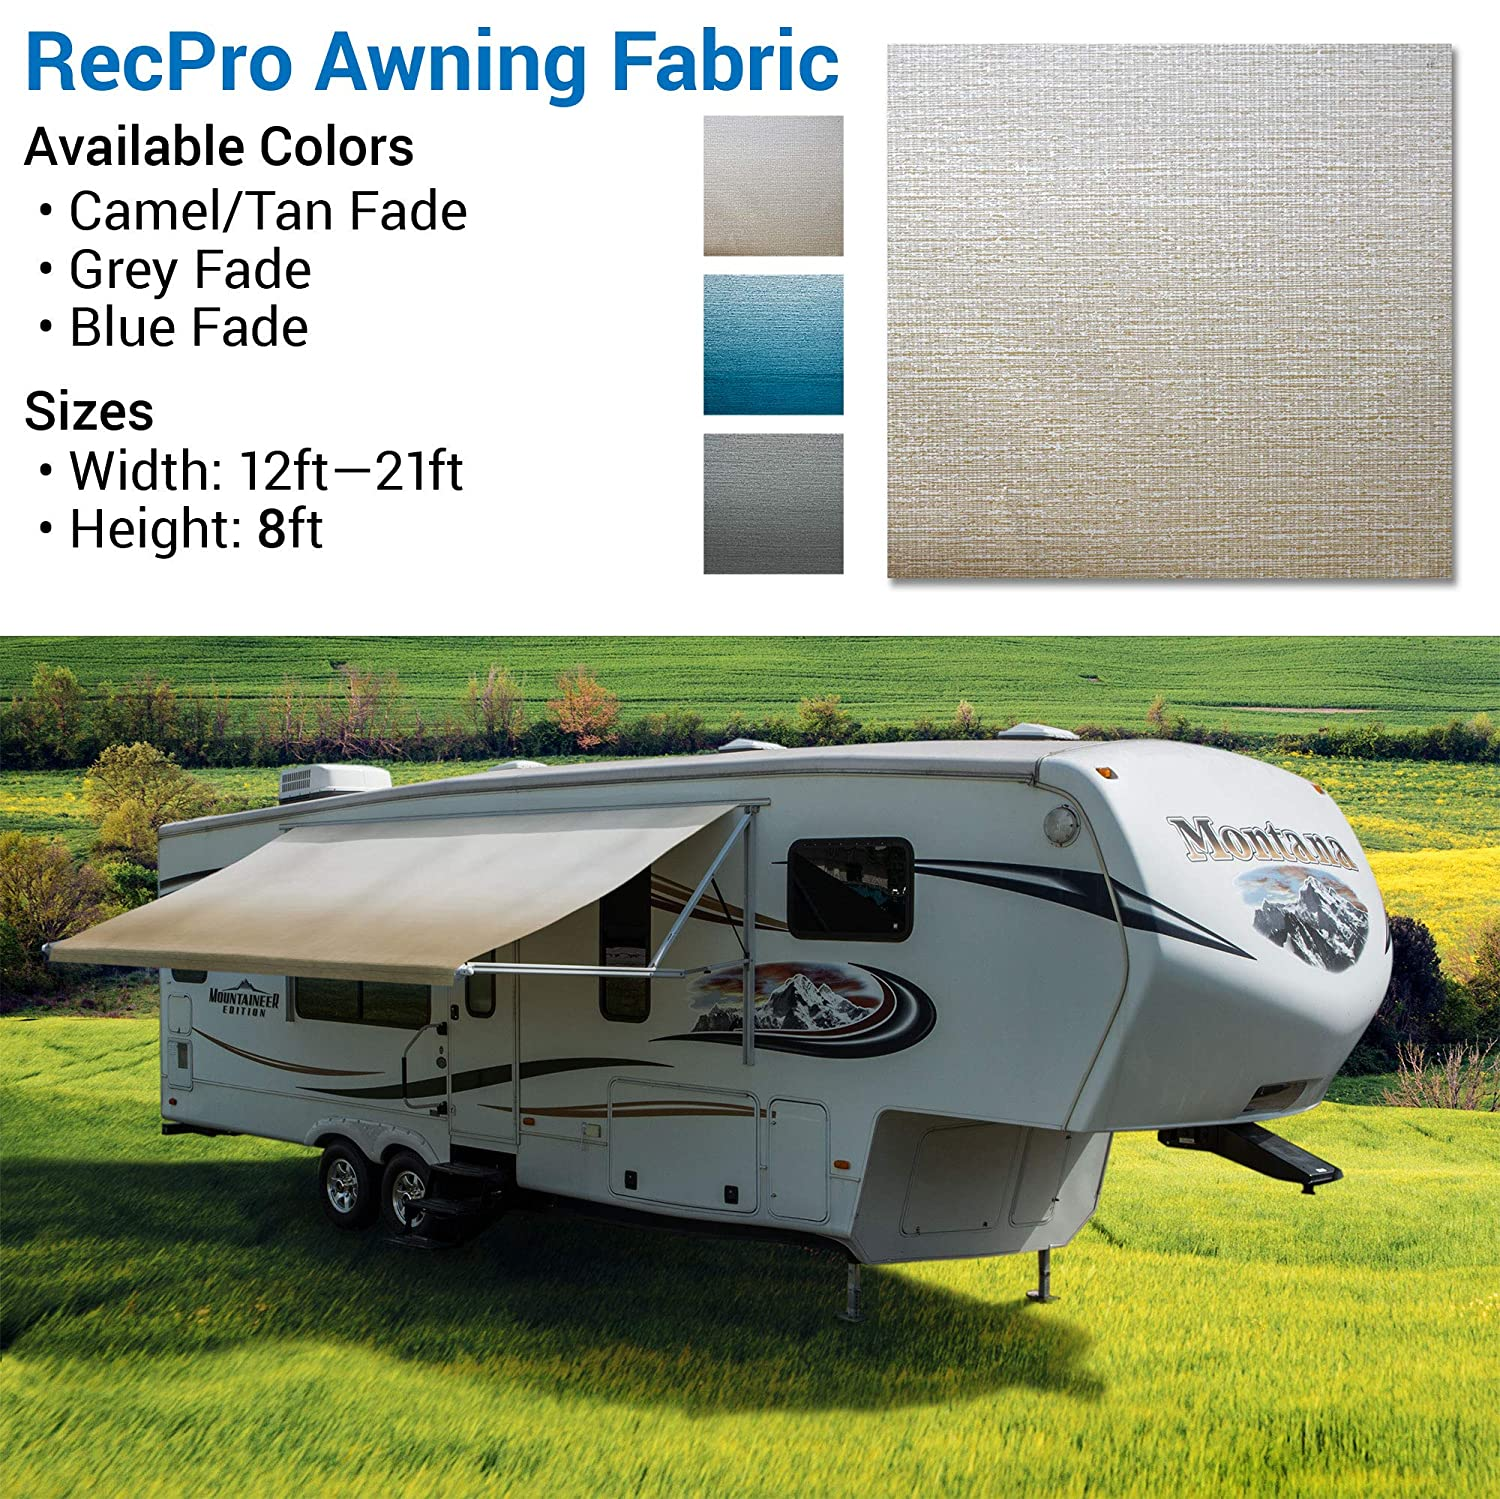 Variety of Color Options 96 8 Standard Grade Vinyl Length RV Awning Replacement RV Awning Fabric 19 Feet Width Tan//Camel Fade